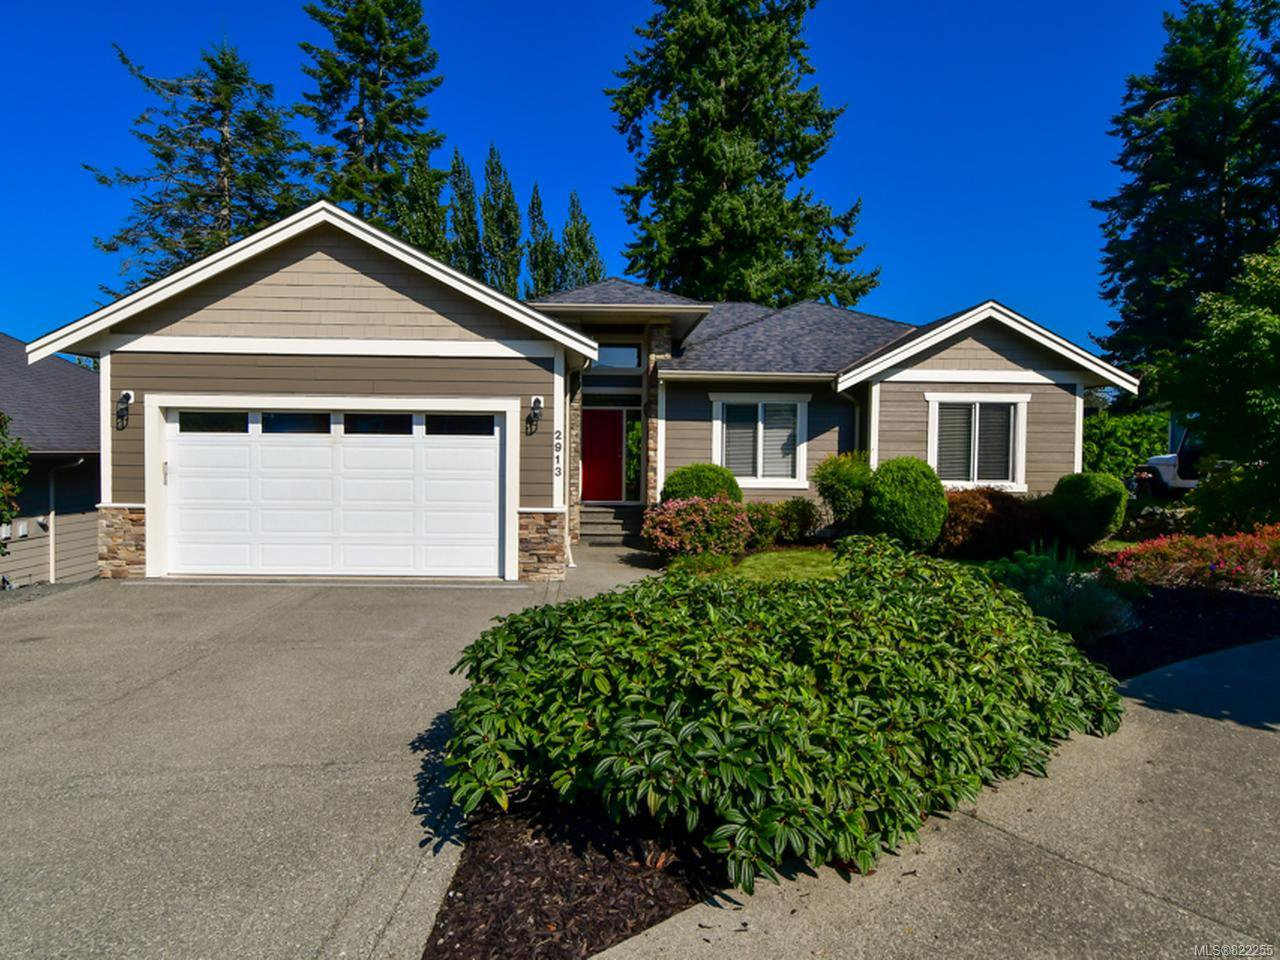 Main Photo: 2913 PACIFIC VIEW TERRACE in CAMPBELL RIVER: CR Willow Point House for sale (Campbell River)  : MLS®# 822255